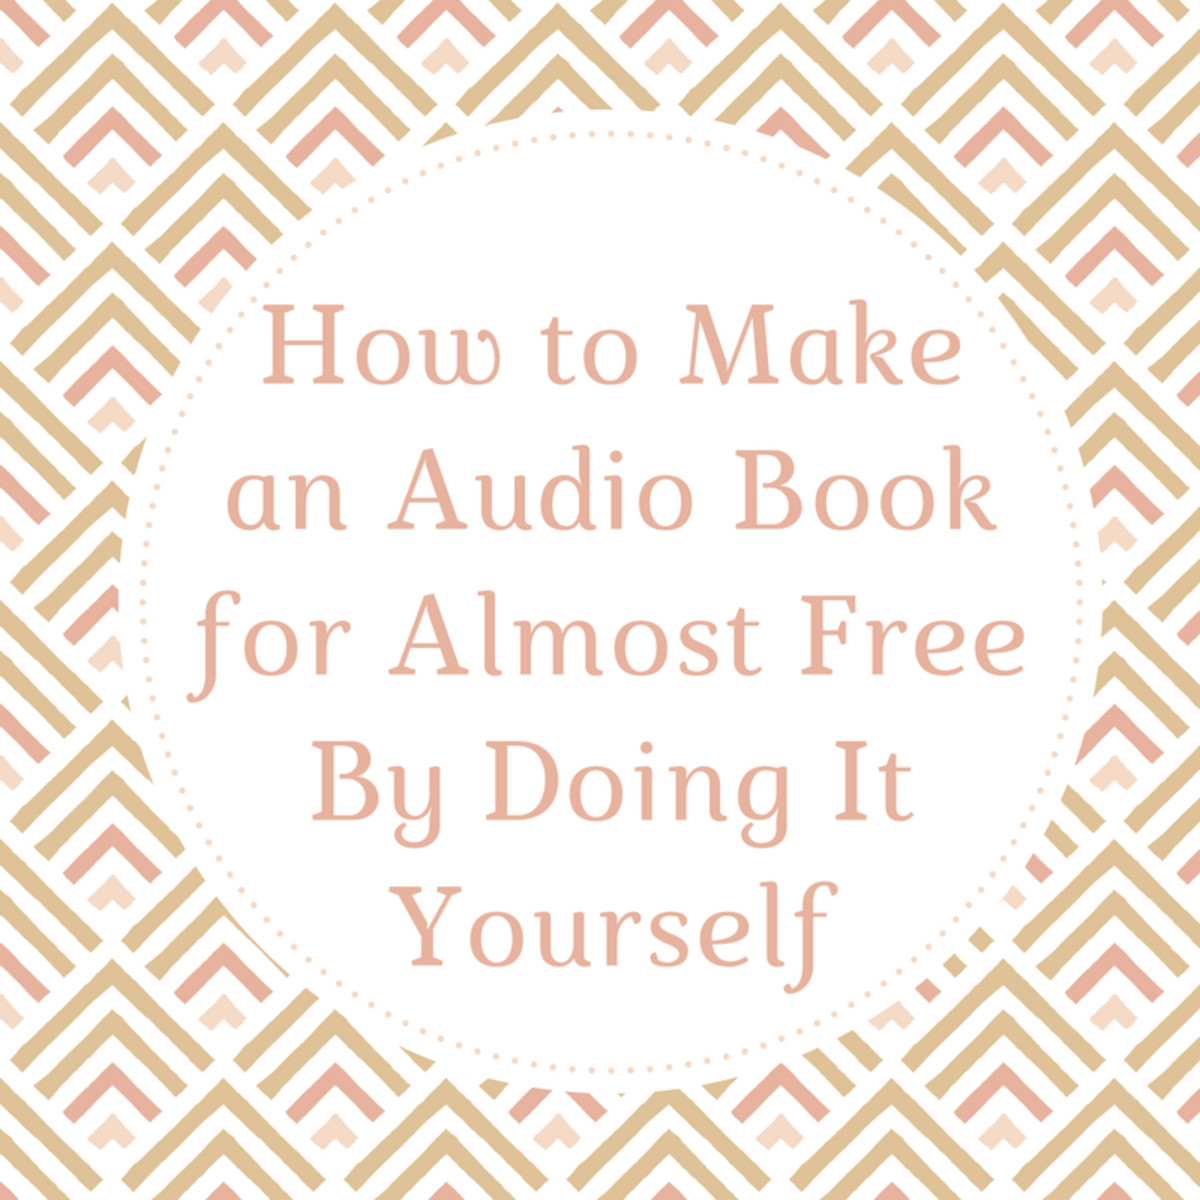 How to Make an Audio Book for Almost Free by Doing It Yourself